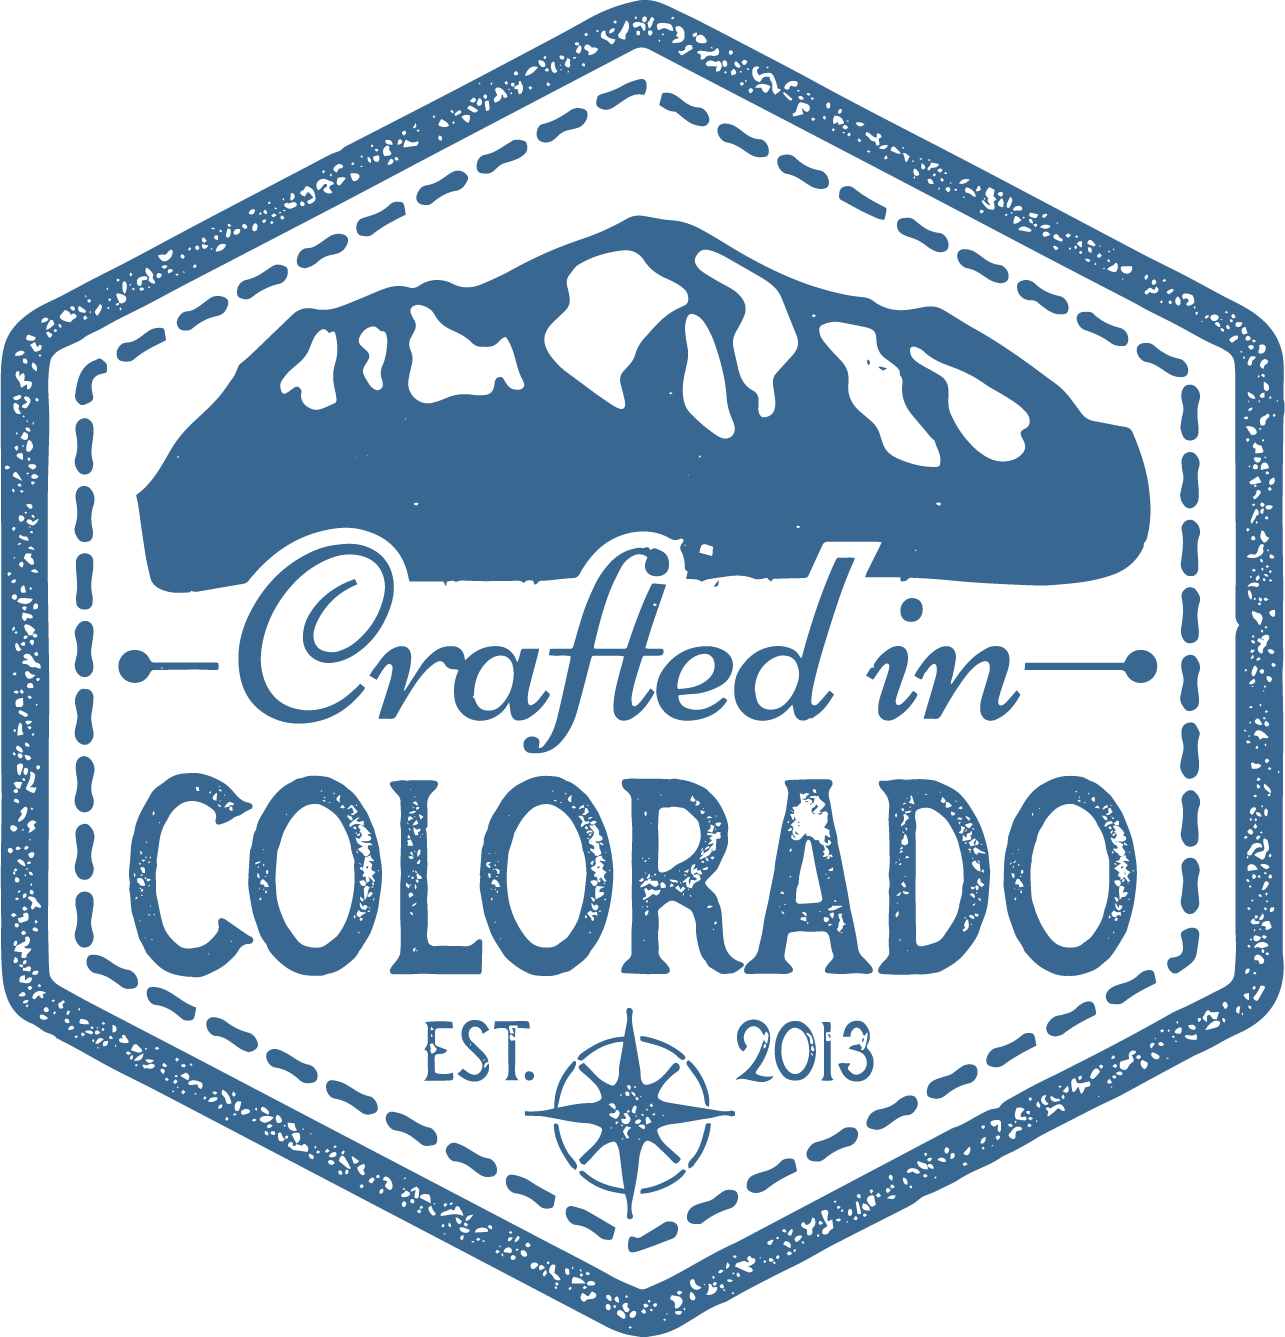 Crafted in Colorado logo